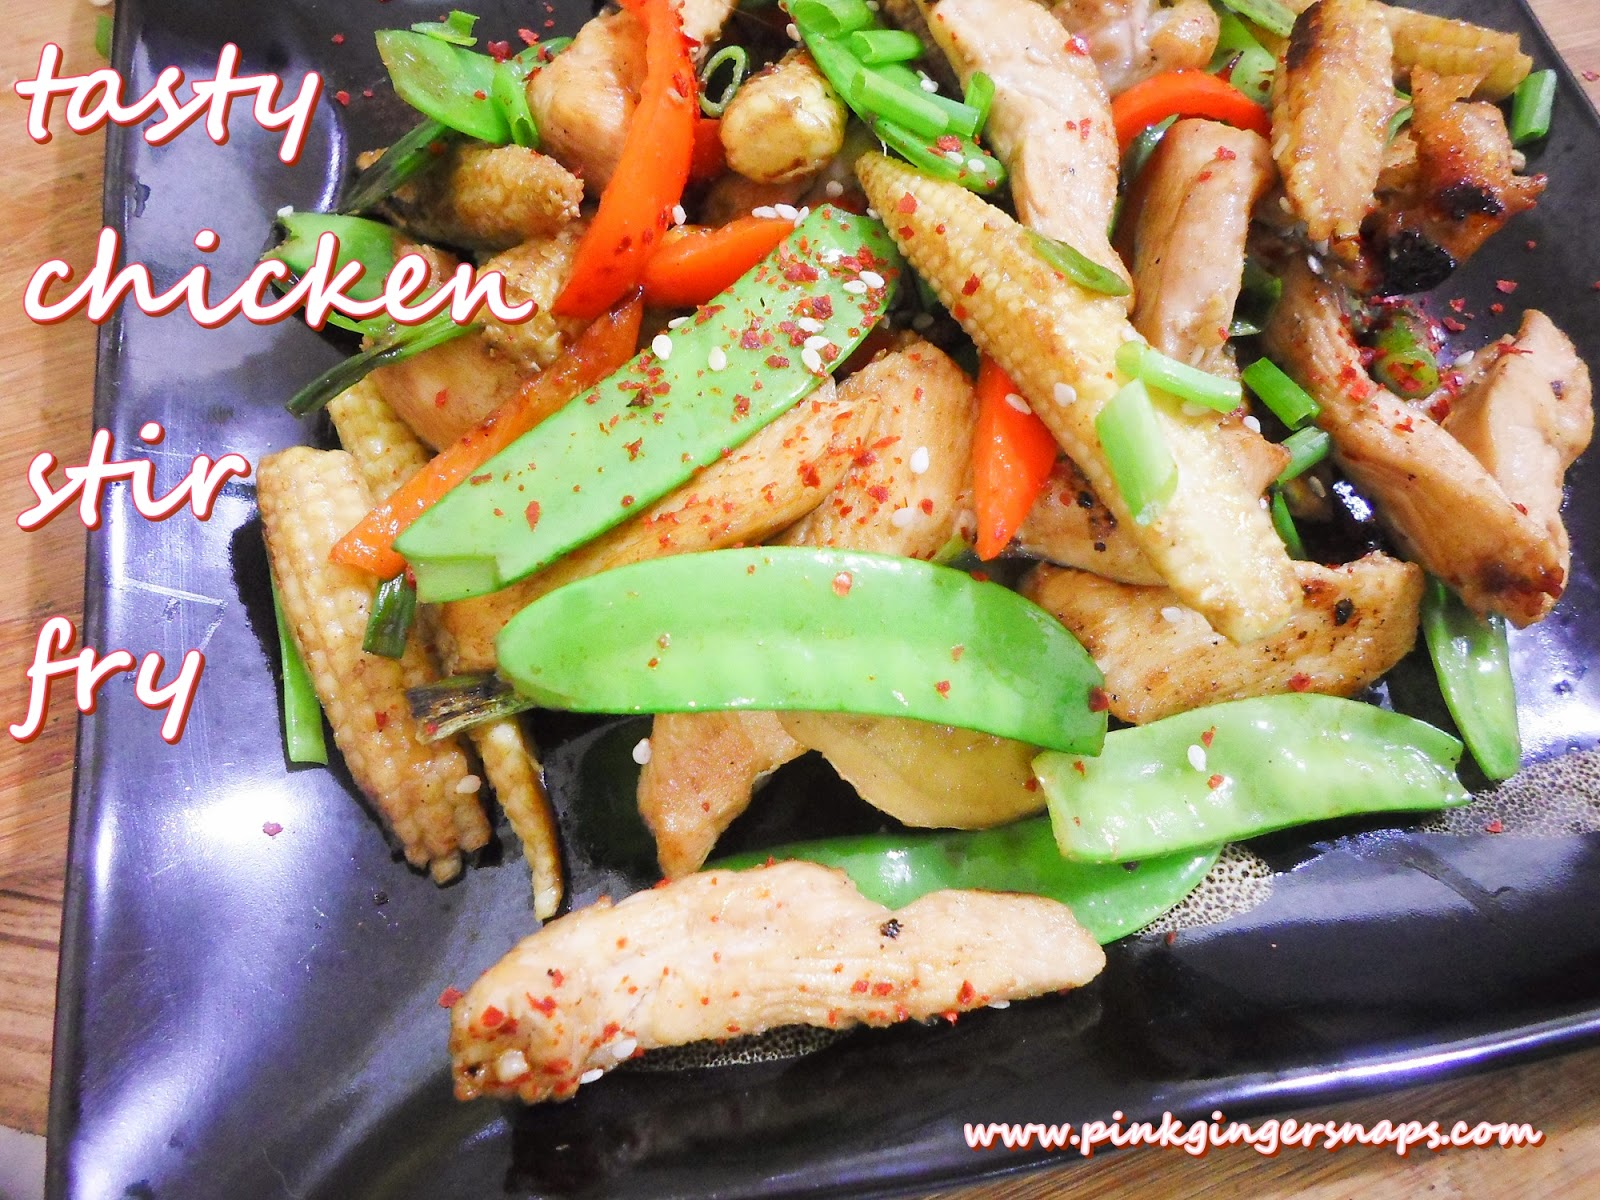 chicken stir-fry for one recipe